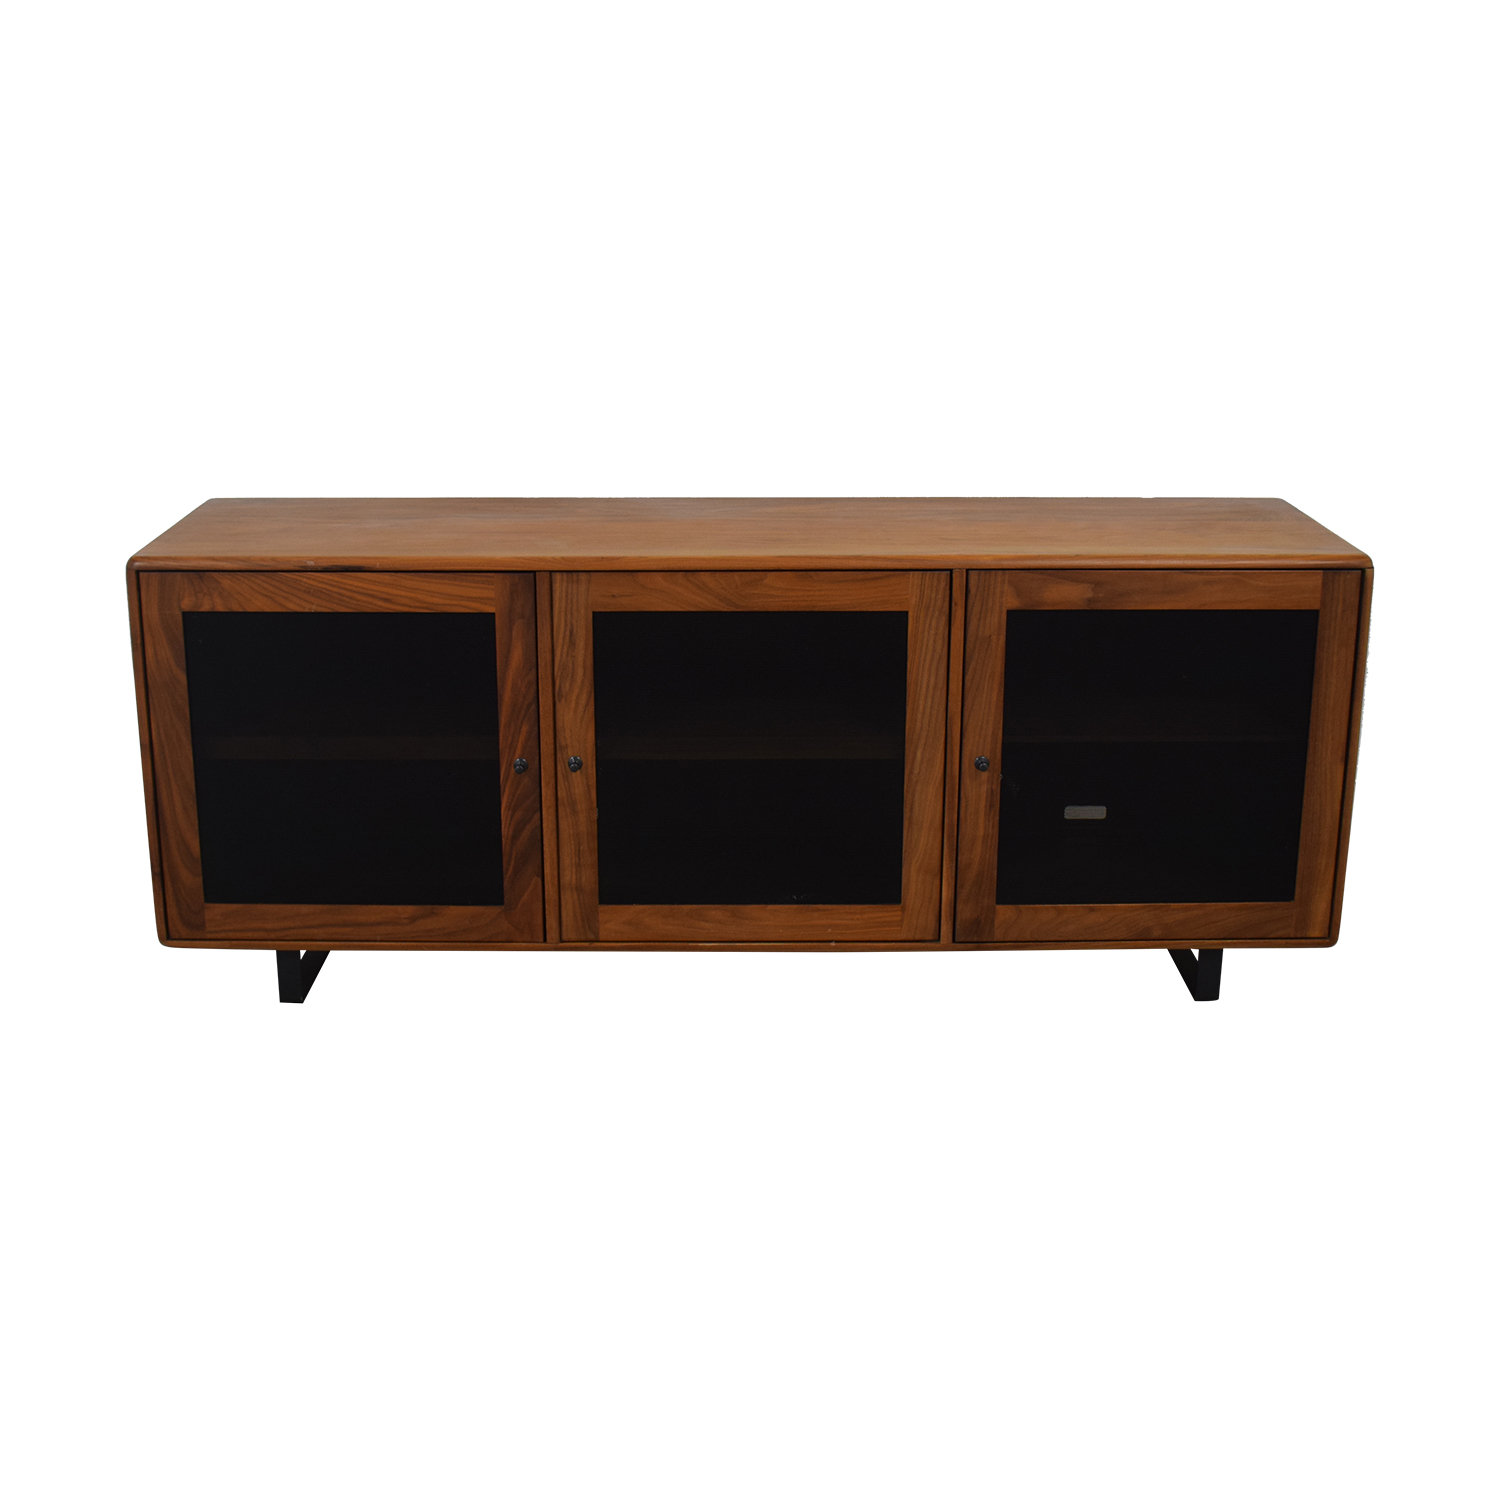 Room & Board Room & Board Whitney Media Cabinet coupon